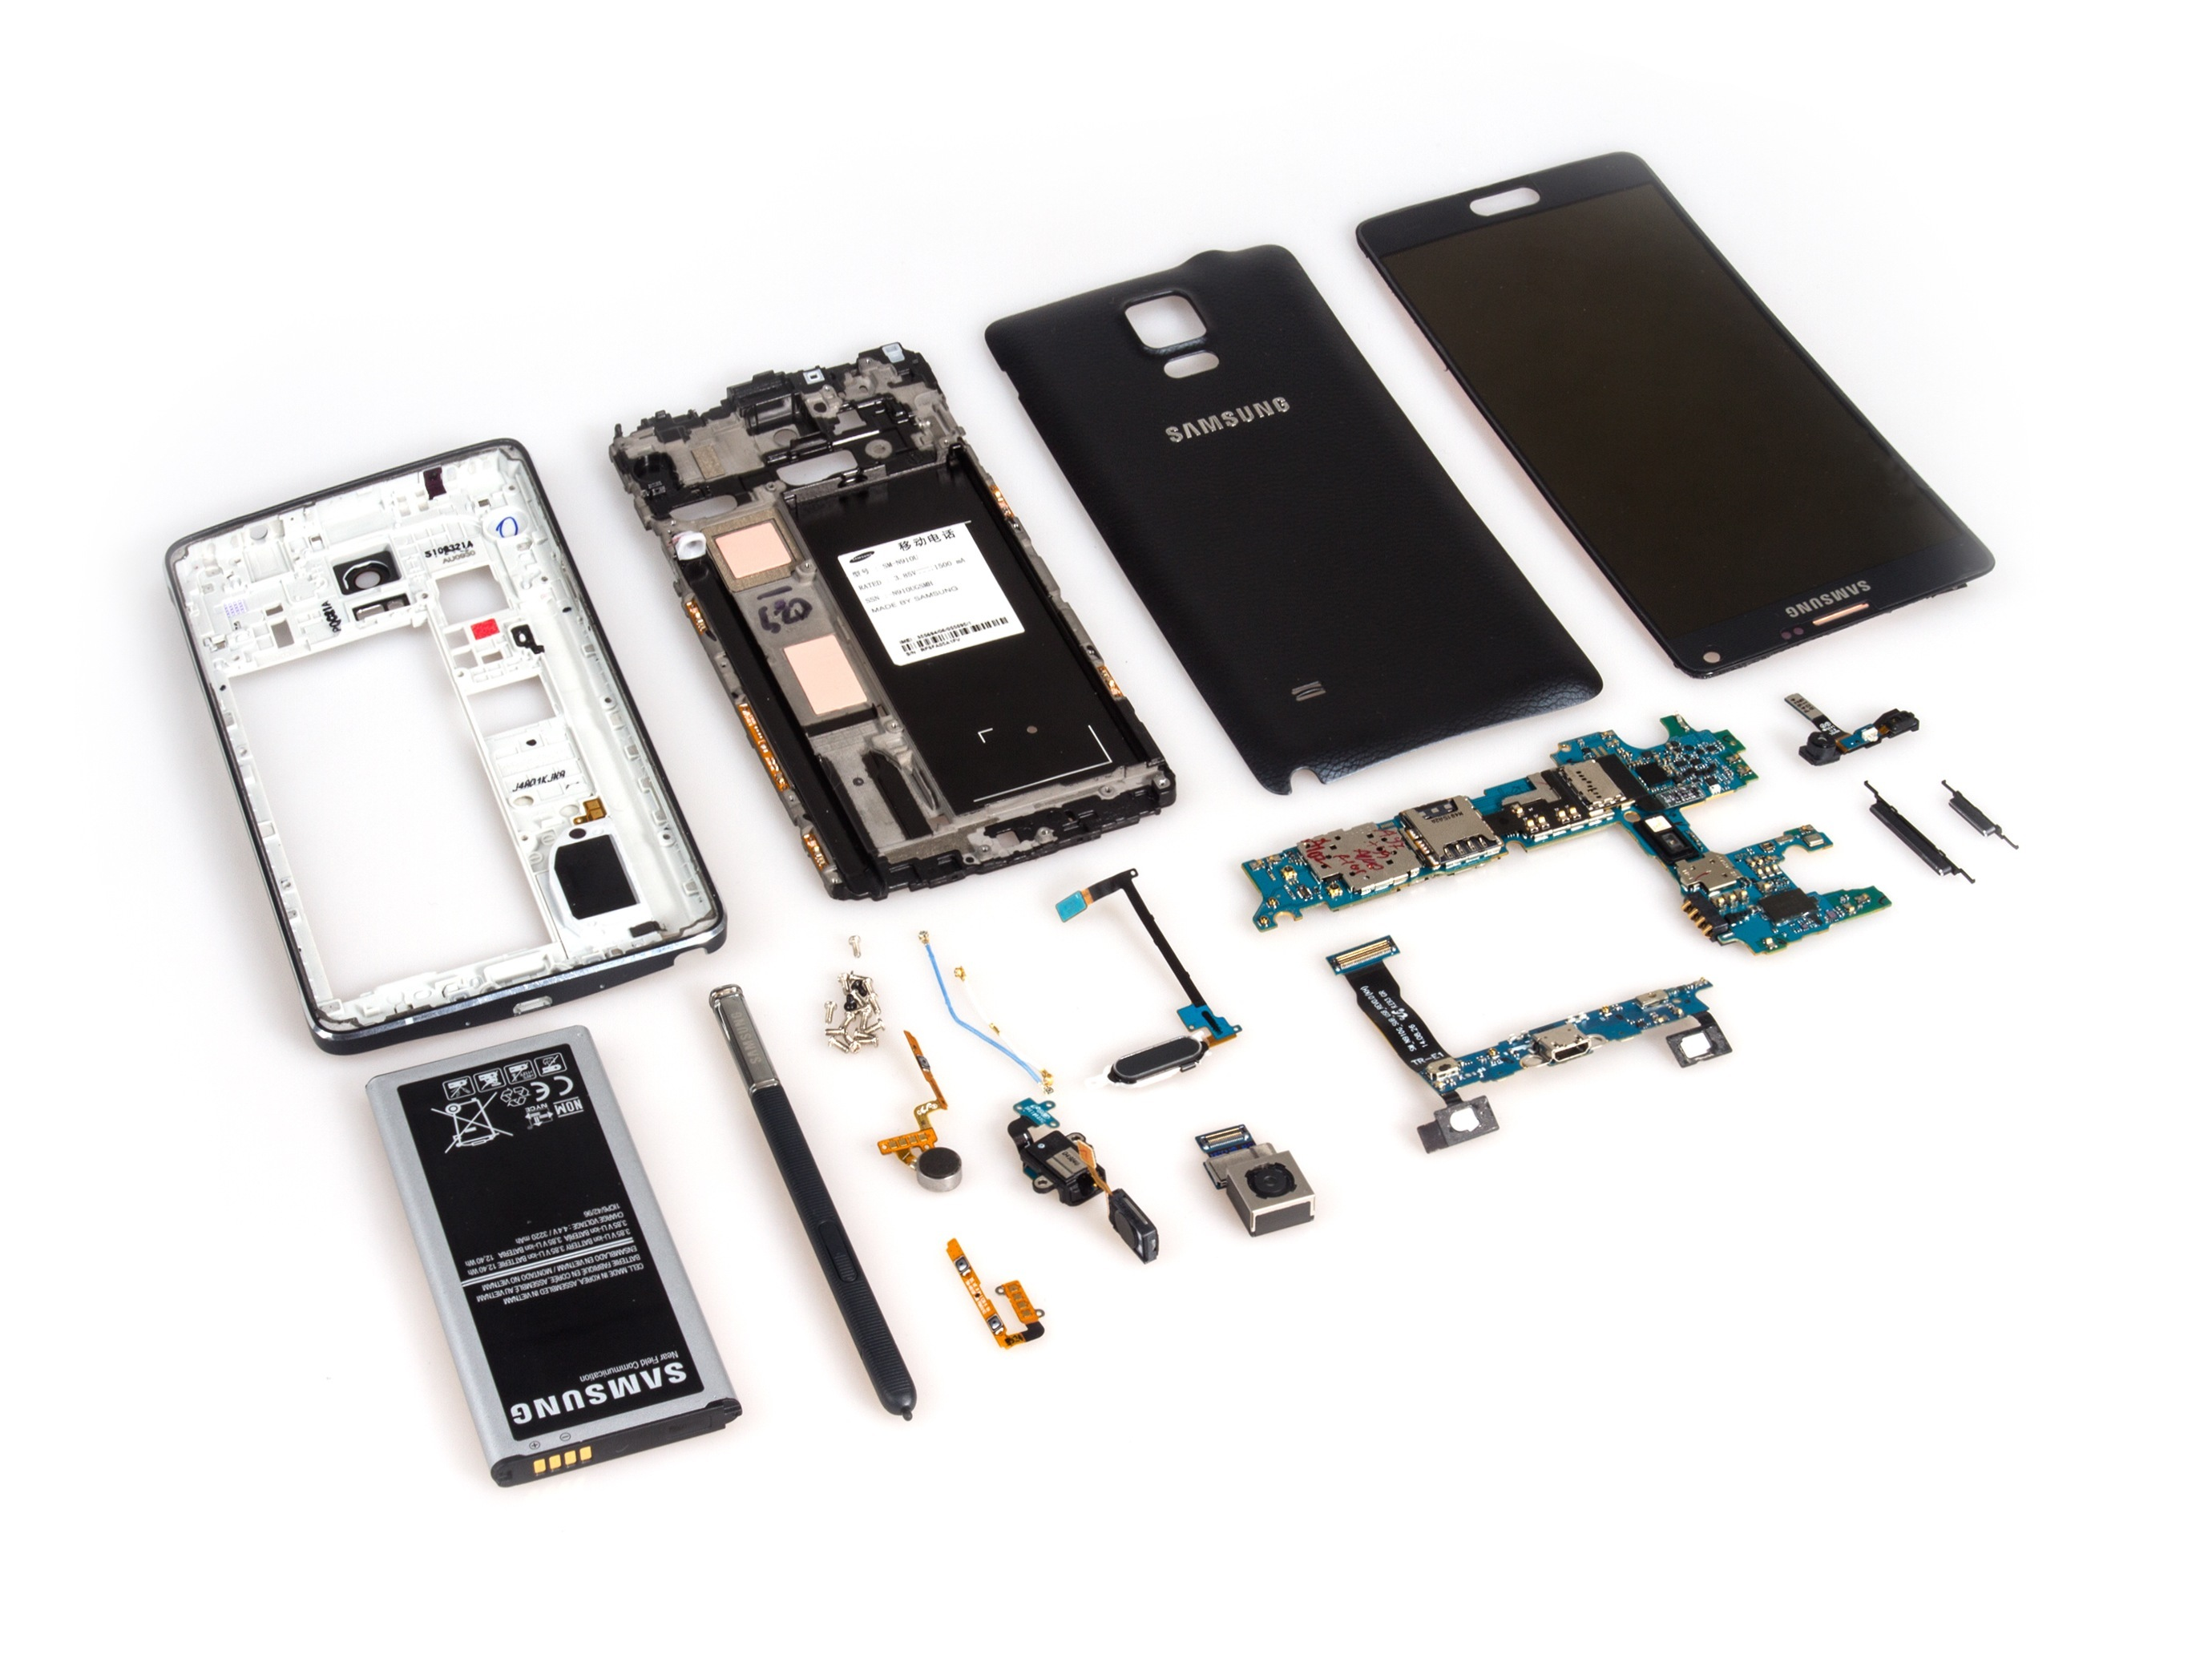 Samsung Galaxy Note 4 Teardown Ifixit